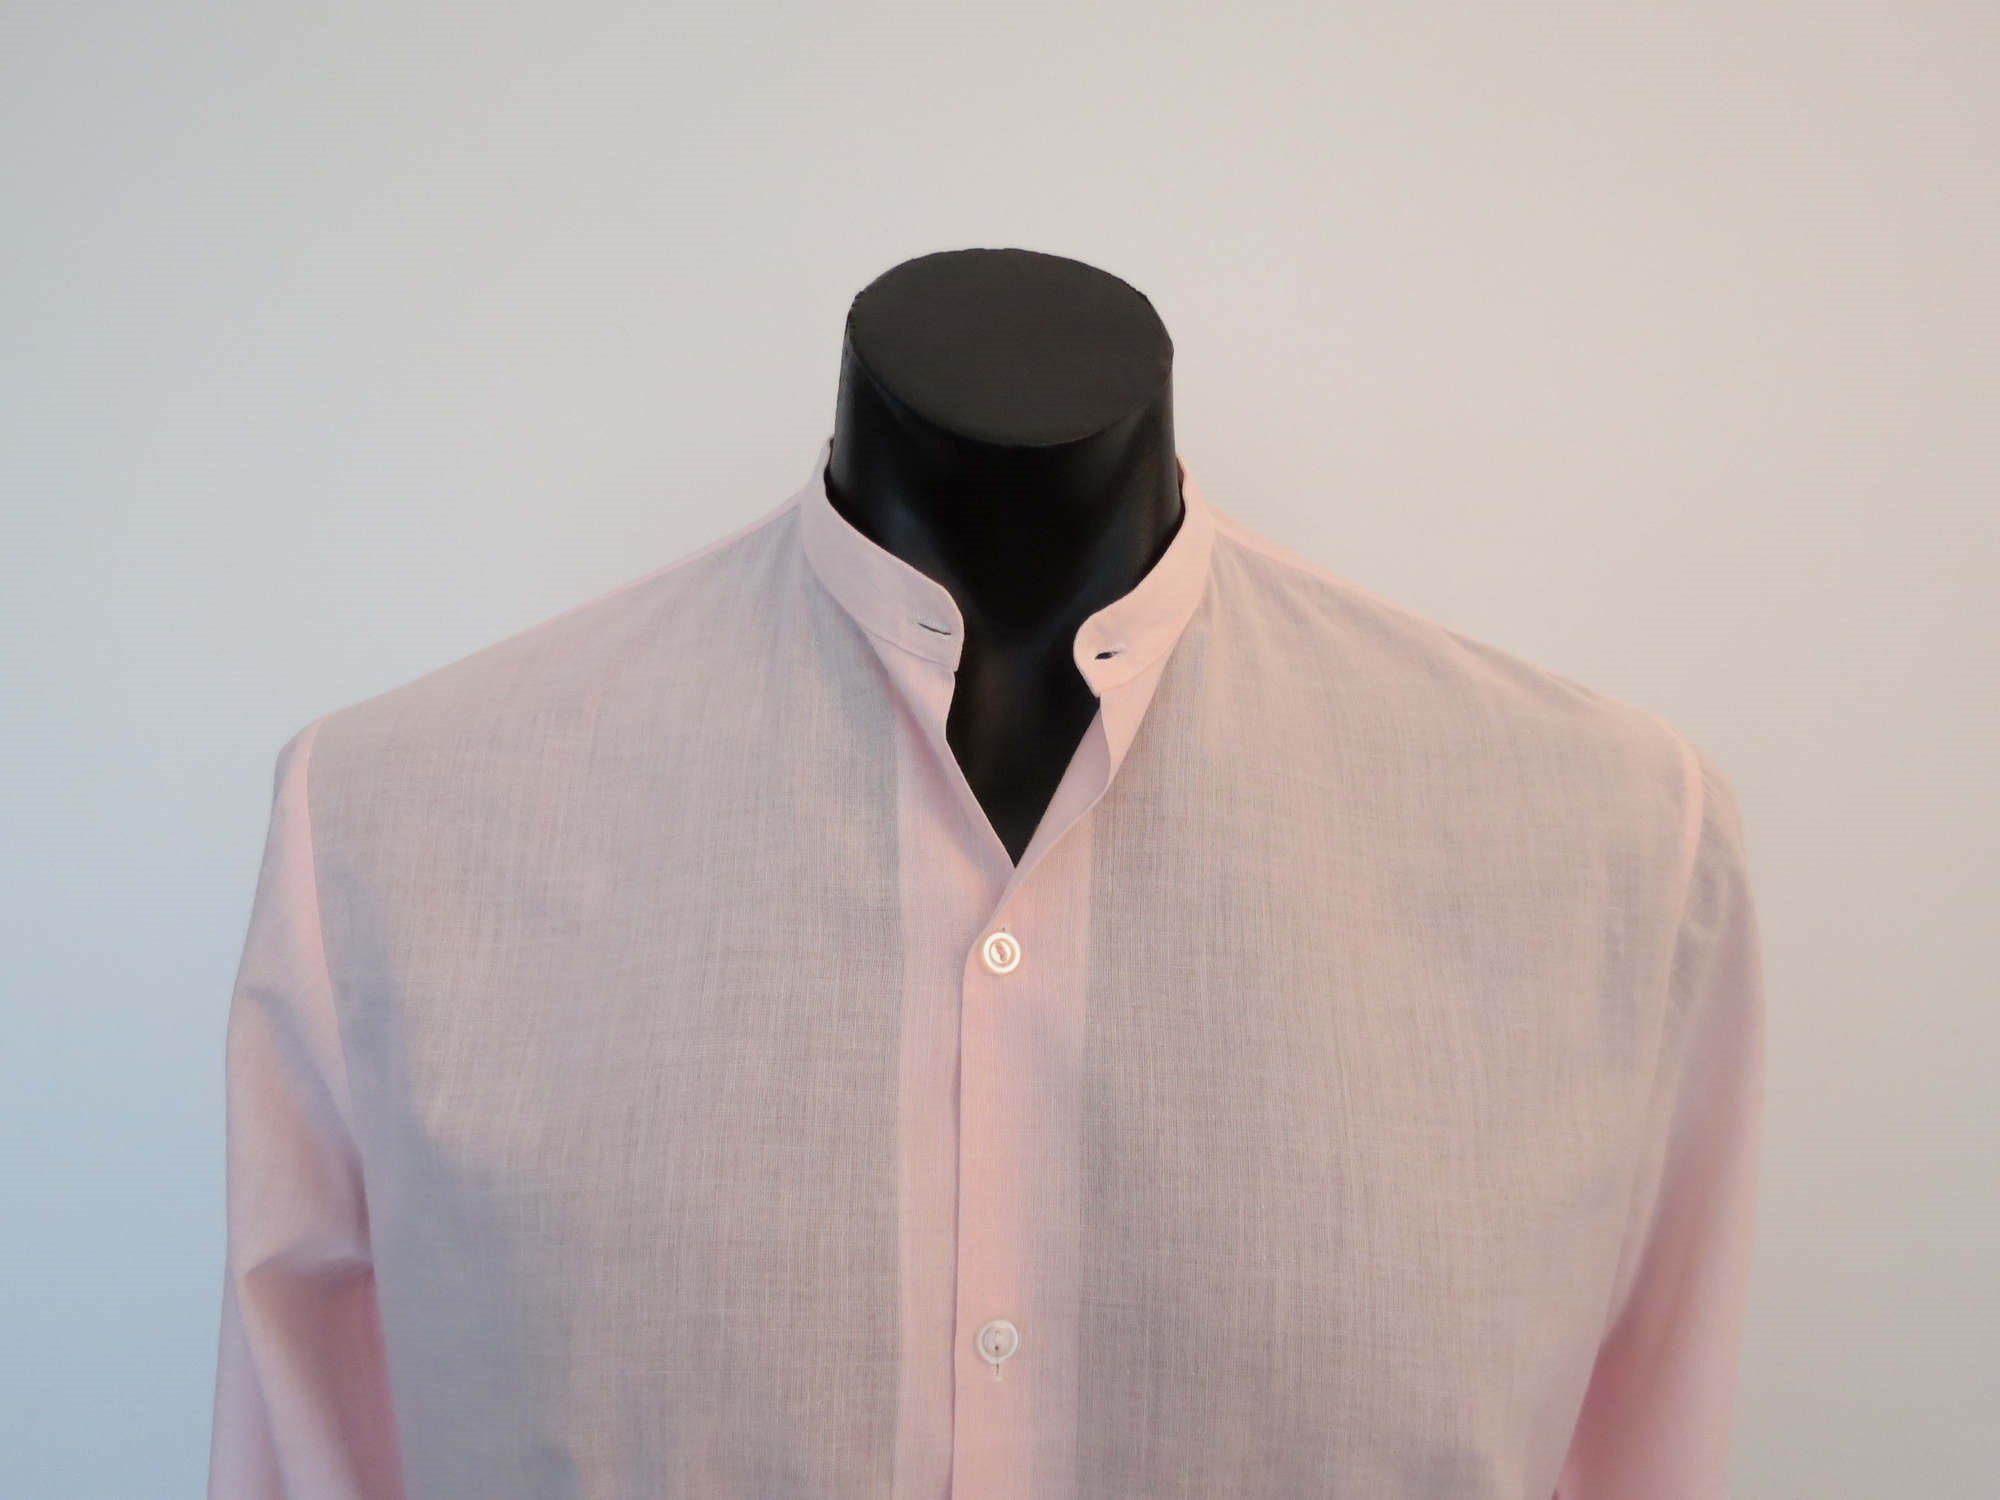 1970s vintage pink dress shirt with detachable wing tip collar